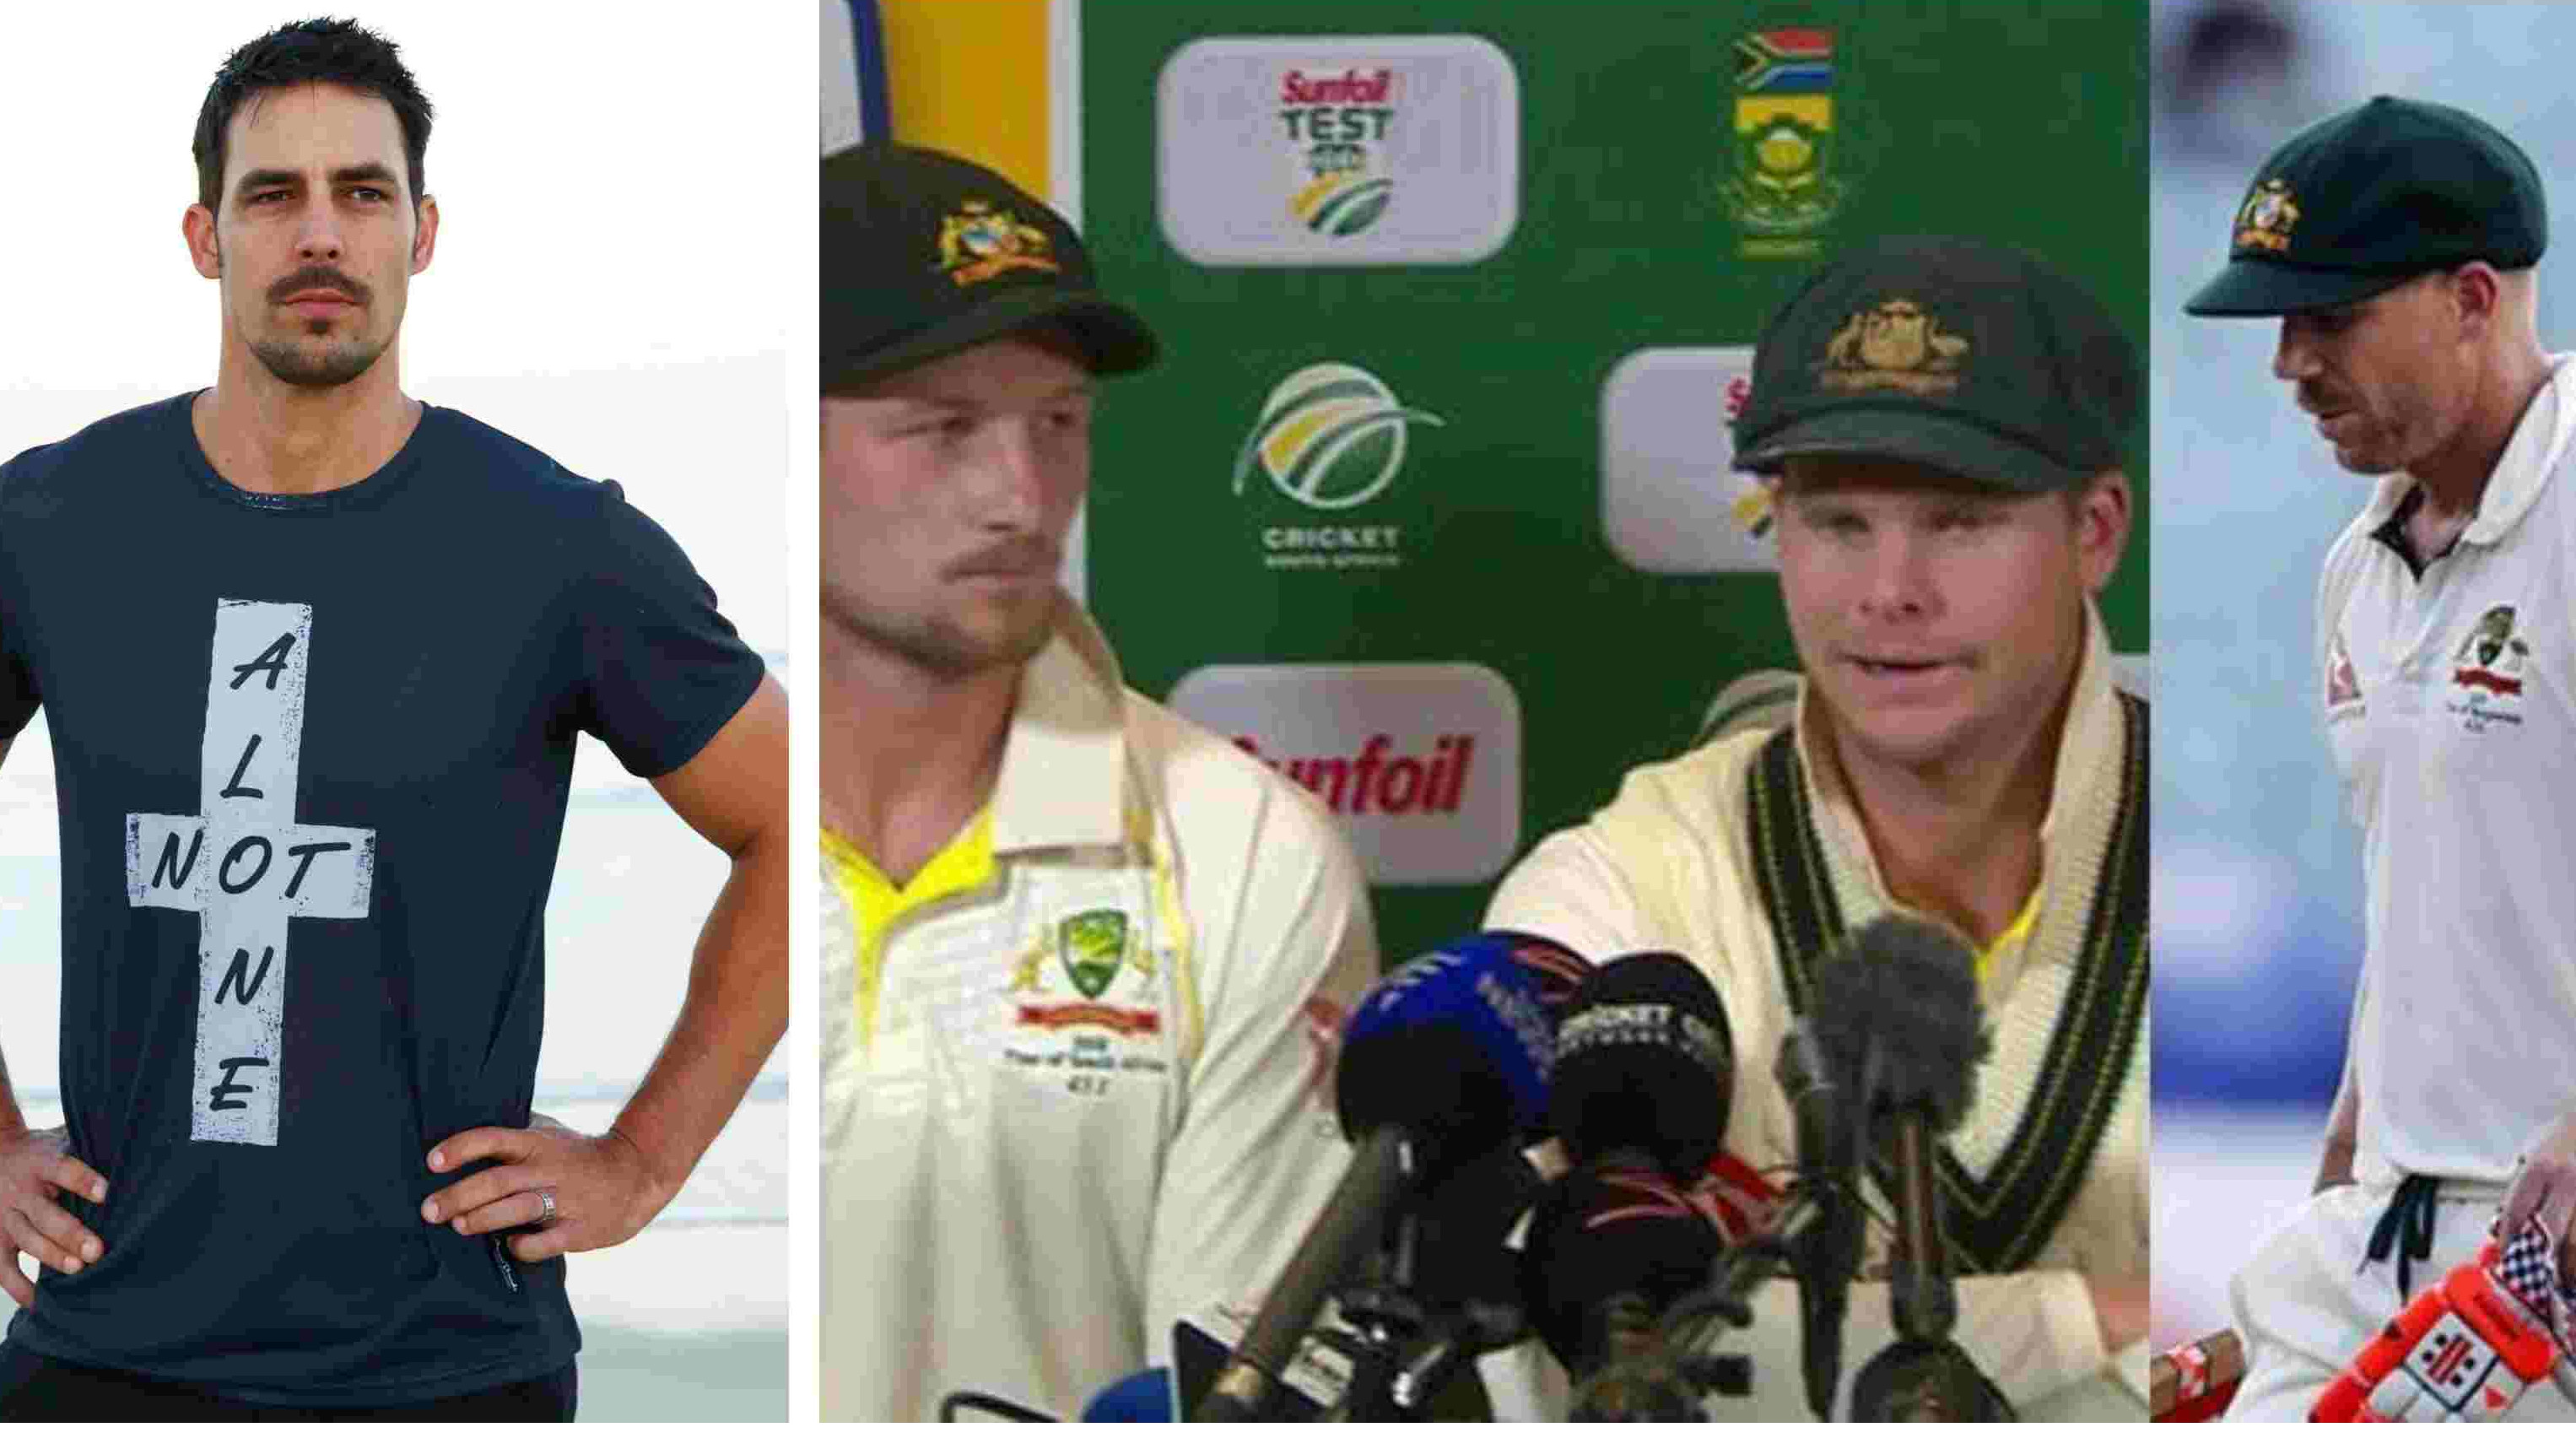 Ball-tampering bans on tainted players should not be reduced, says Mitchell Johnson